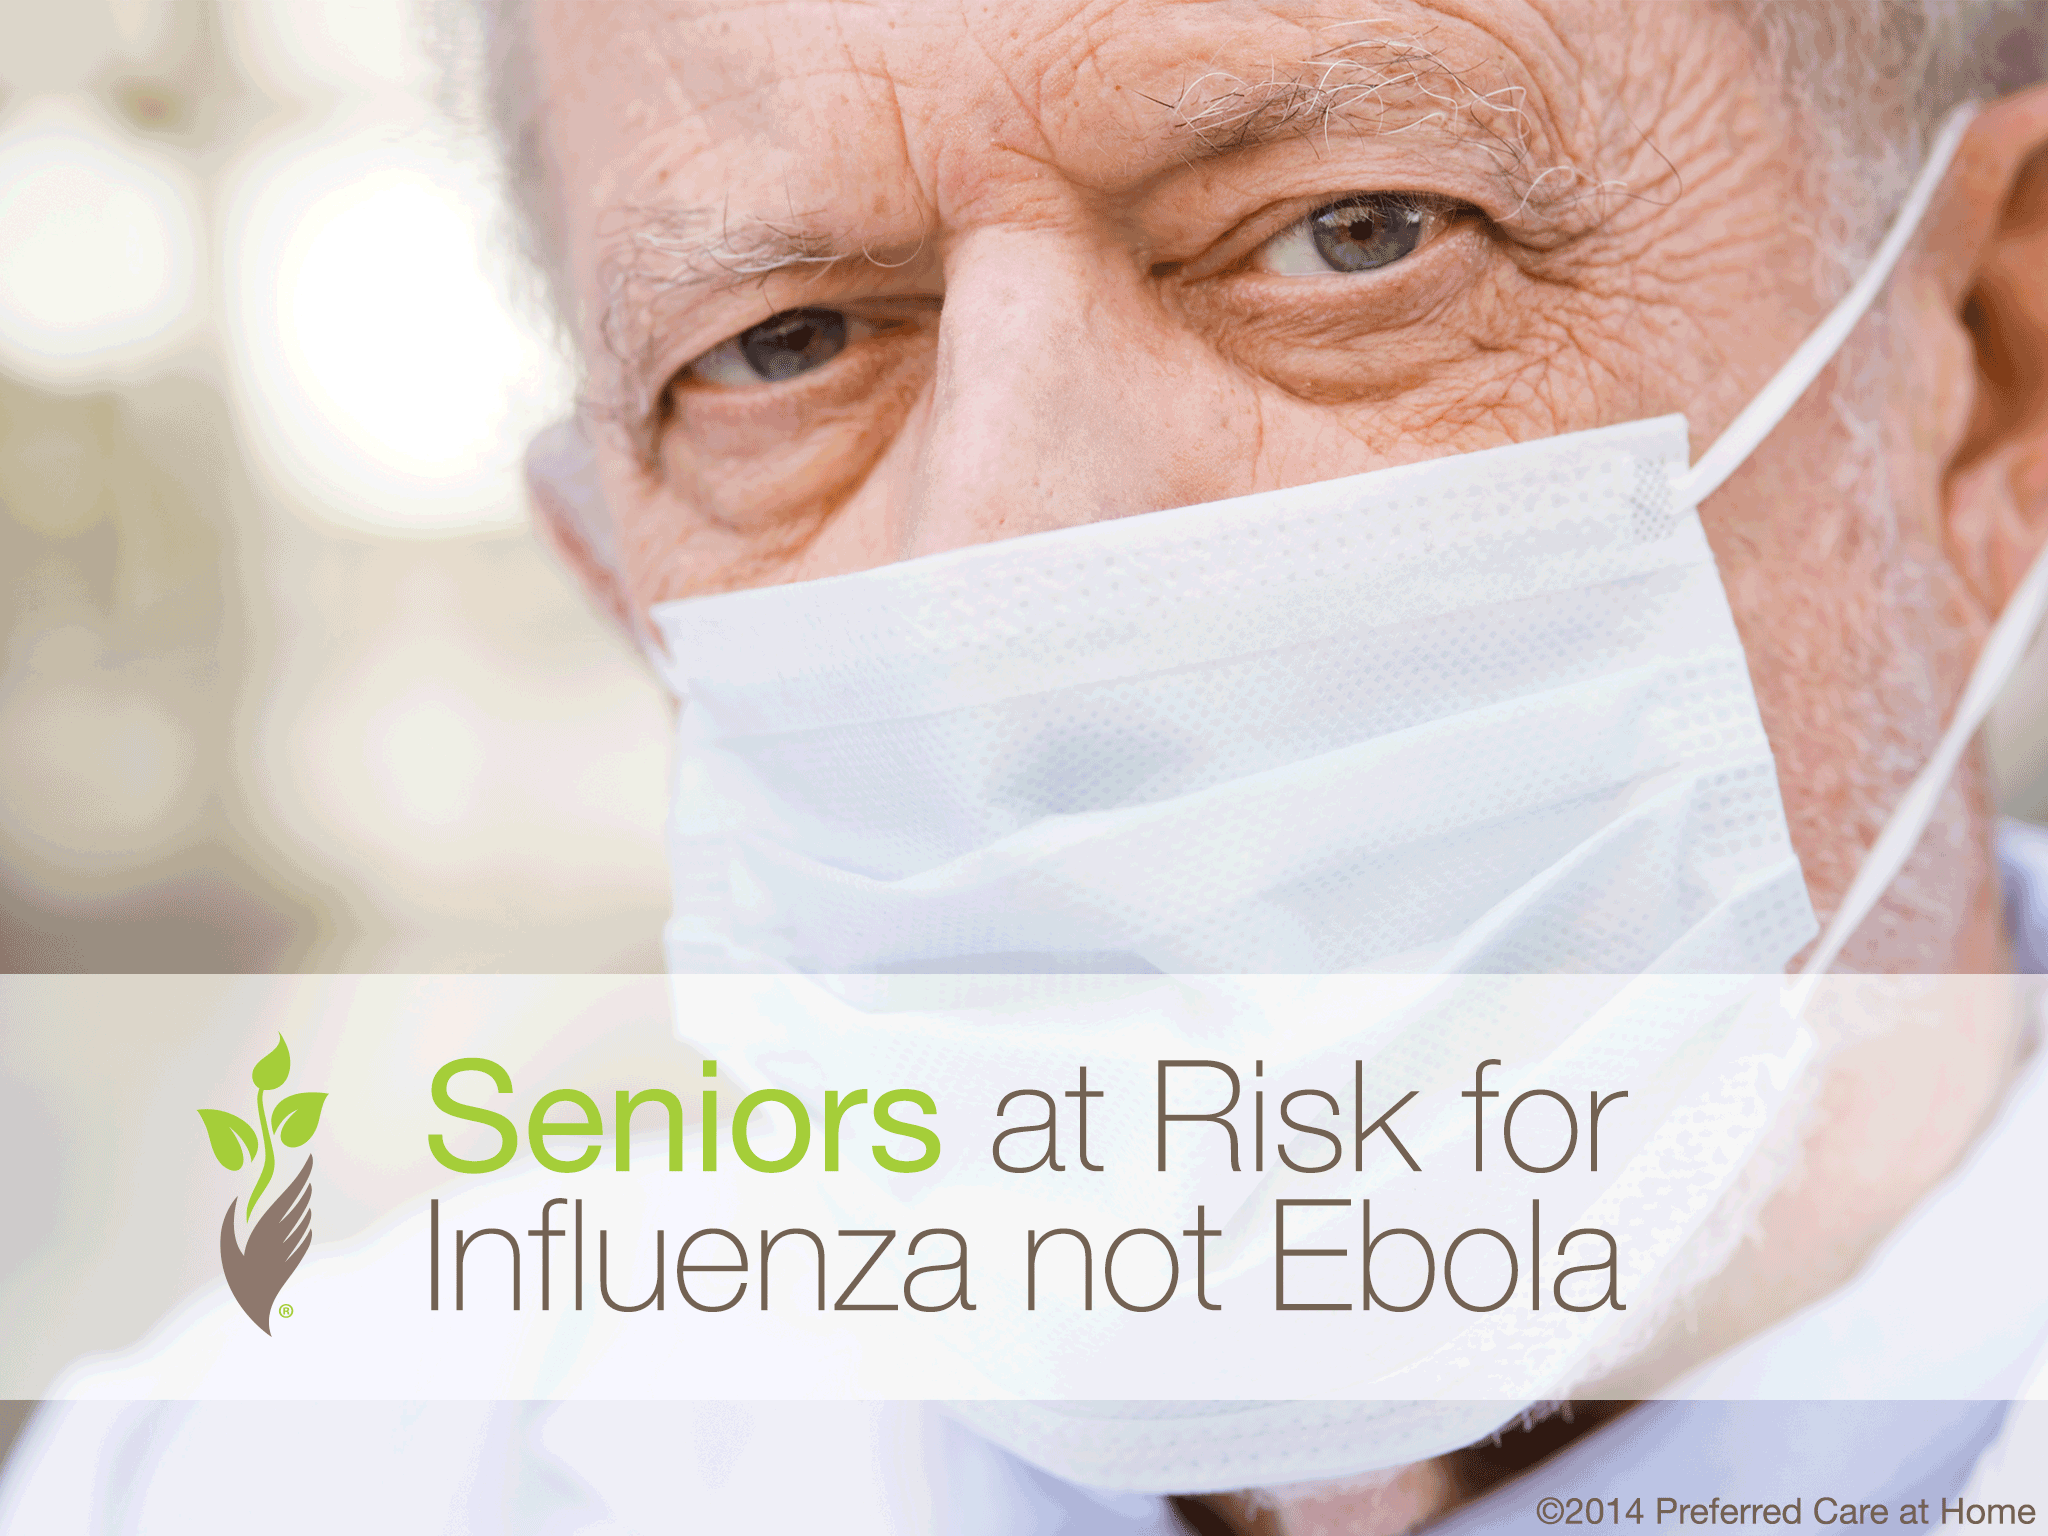 Seniors at Risk for Influenza not Ebola